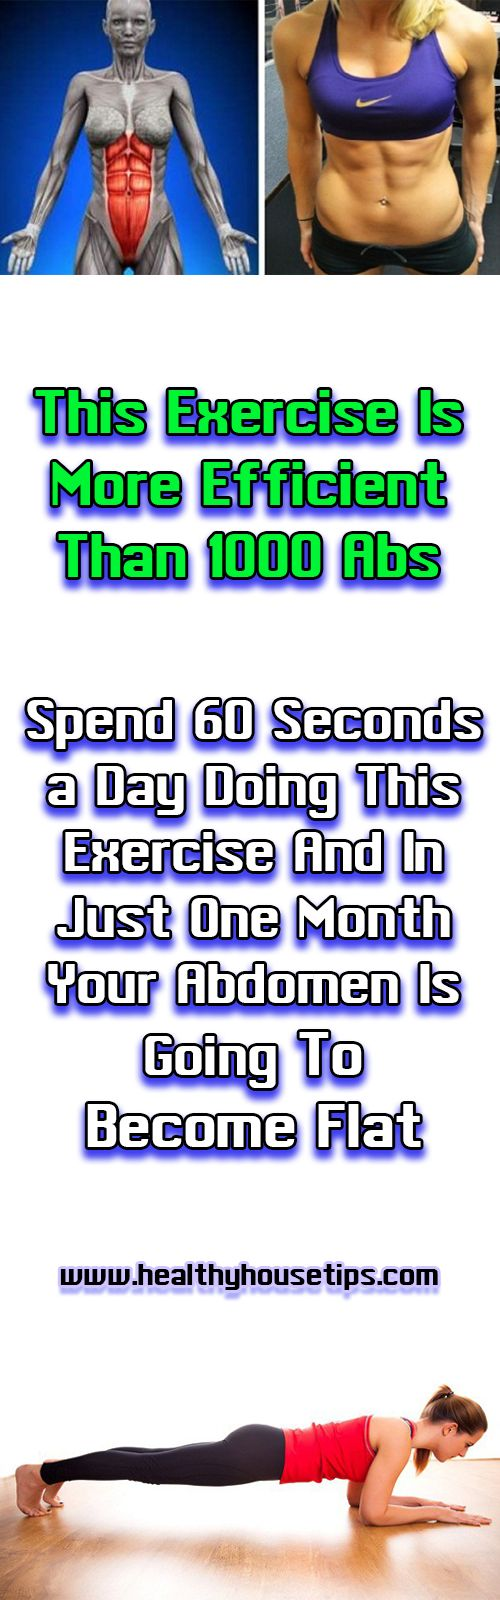 This Exercise Is More Efficient Than 1000 Abs Spend 60 Seconds a Day Doing This Exercise And In Just One Month Your Abdomen Is Going To Become Flat